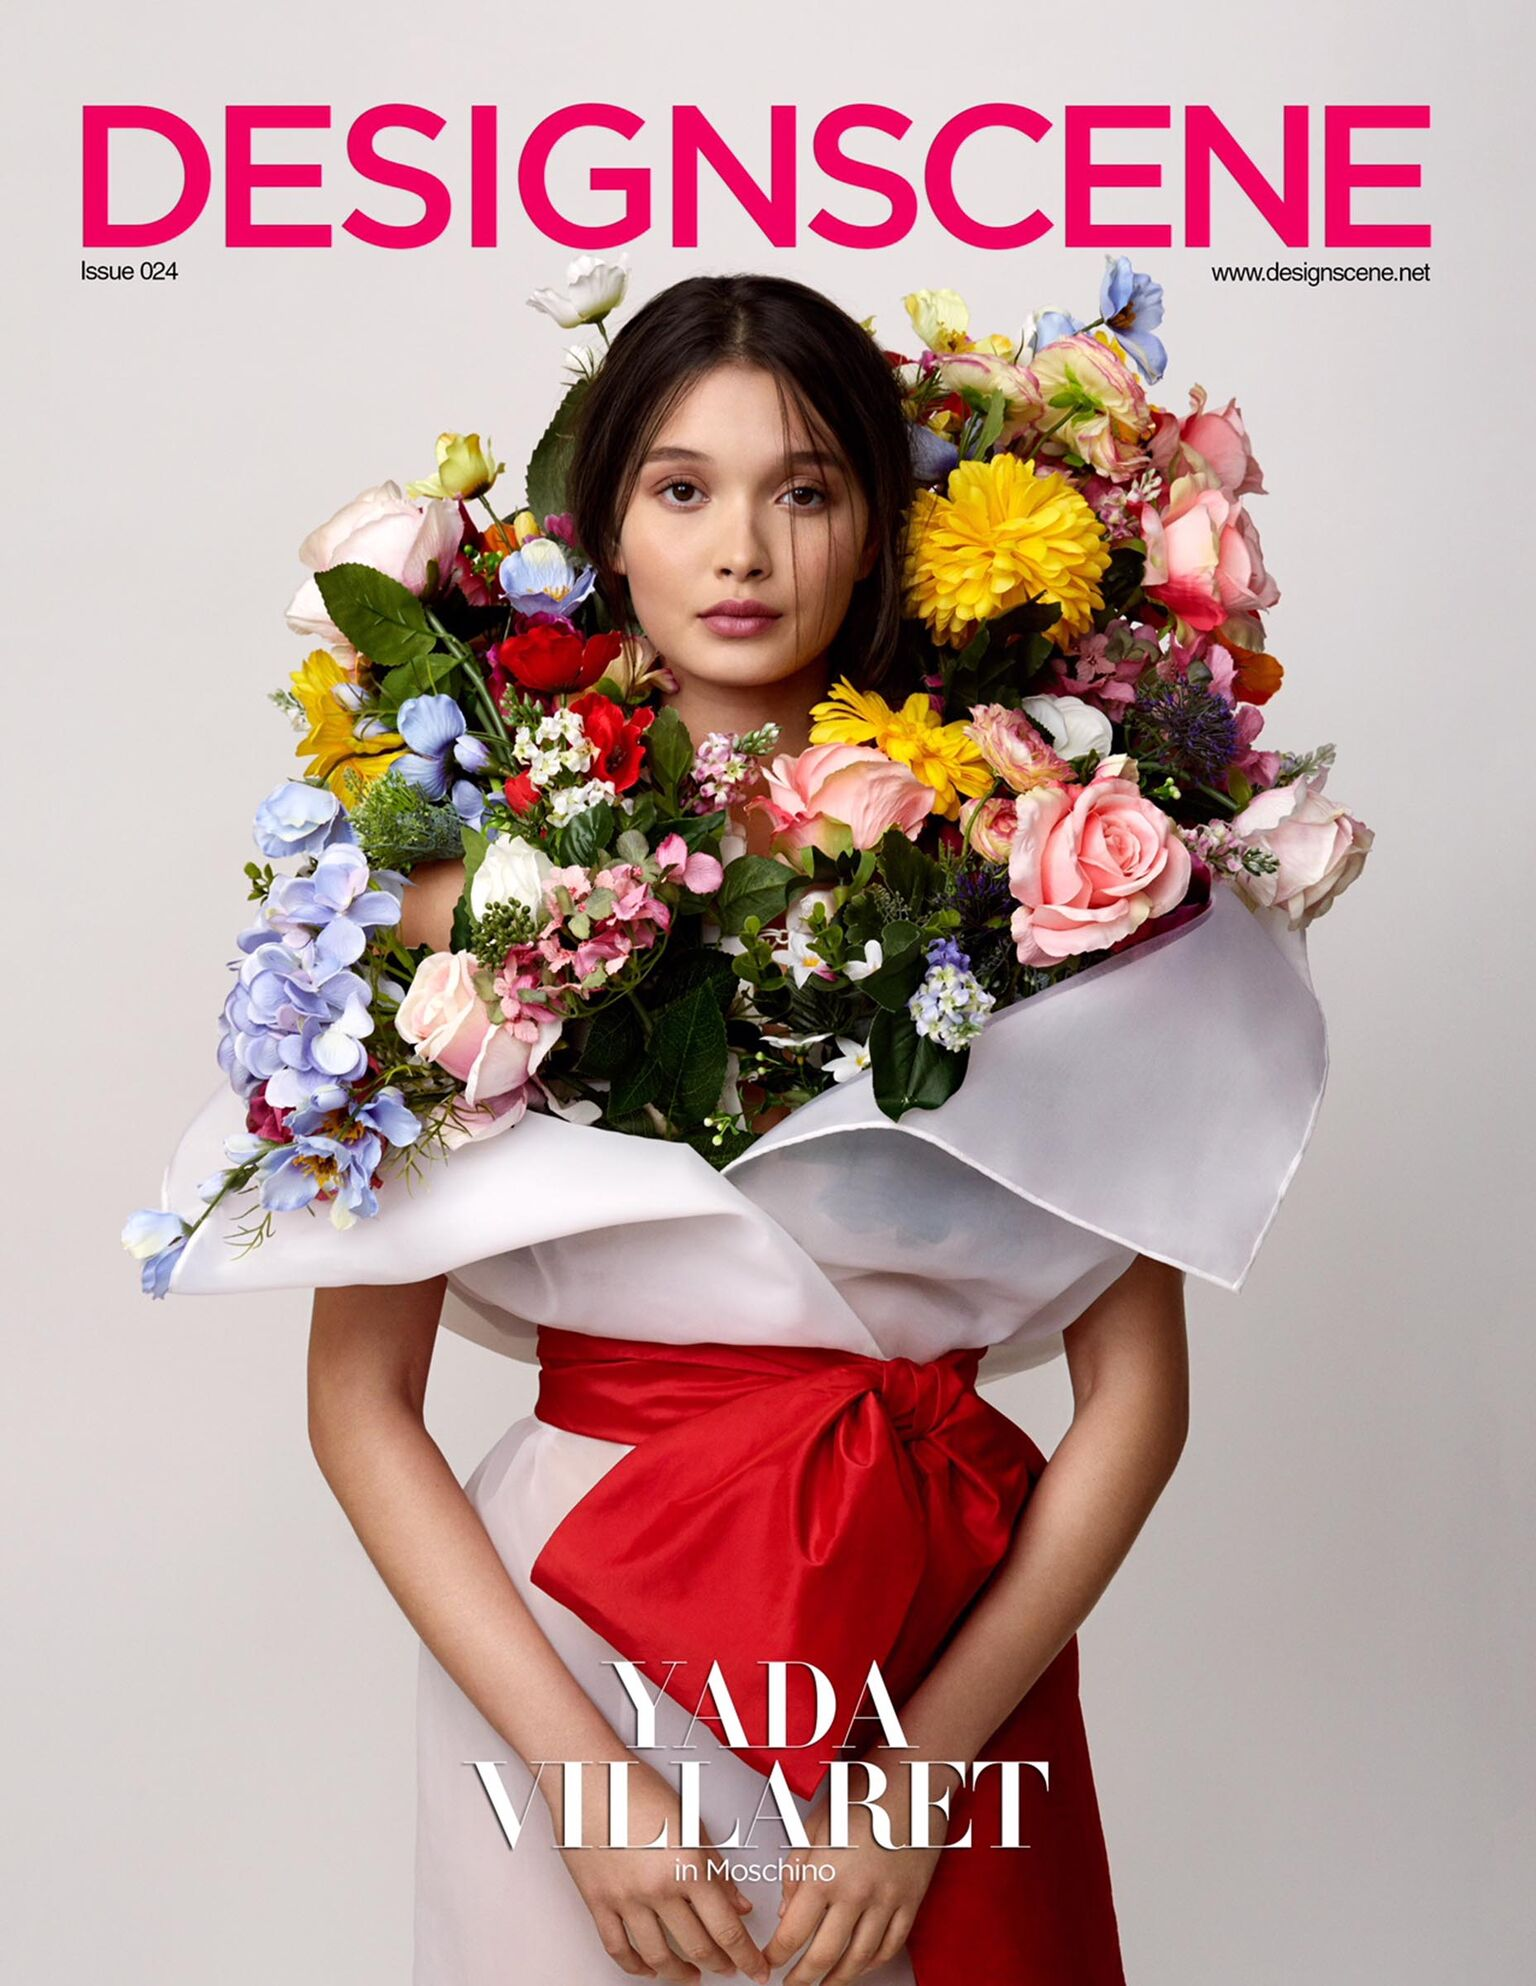 issue 24 design scene magazine cover.jpg